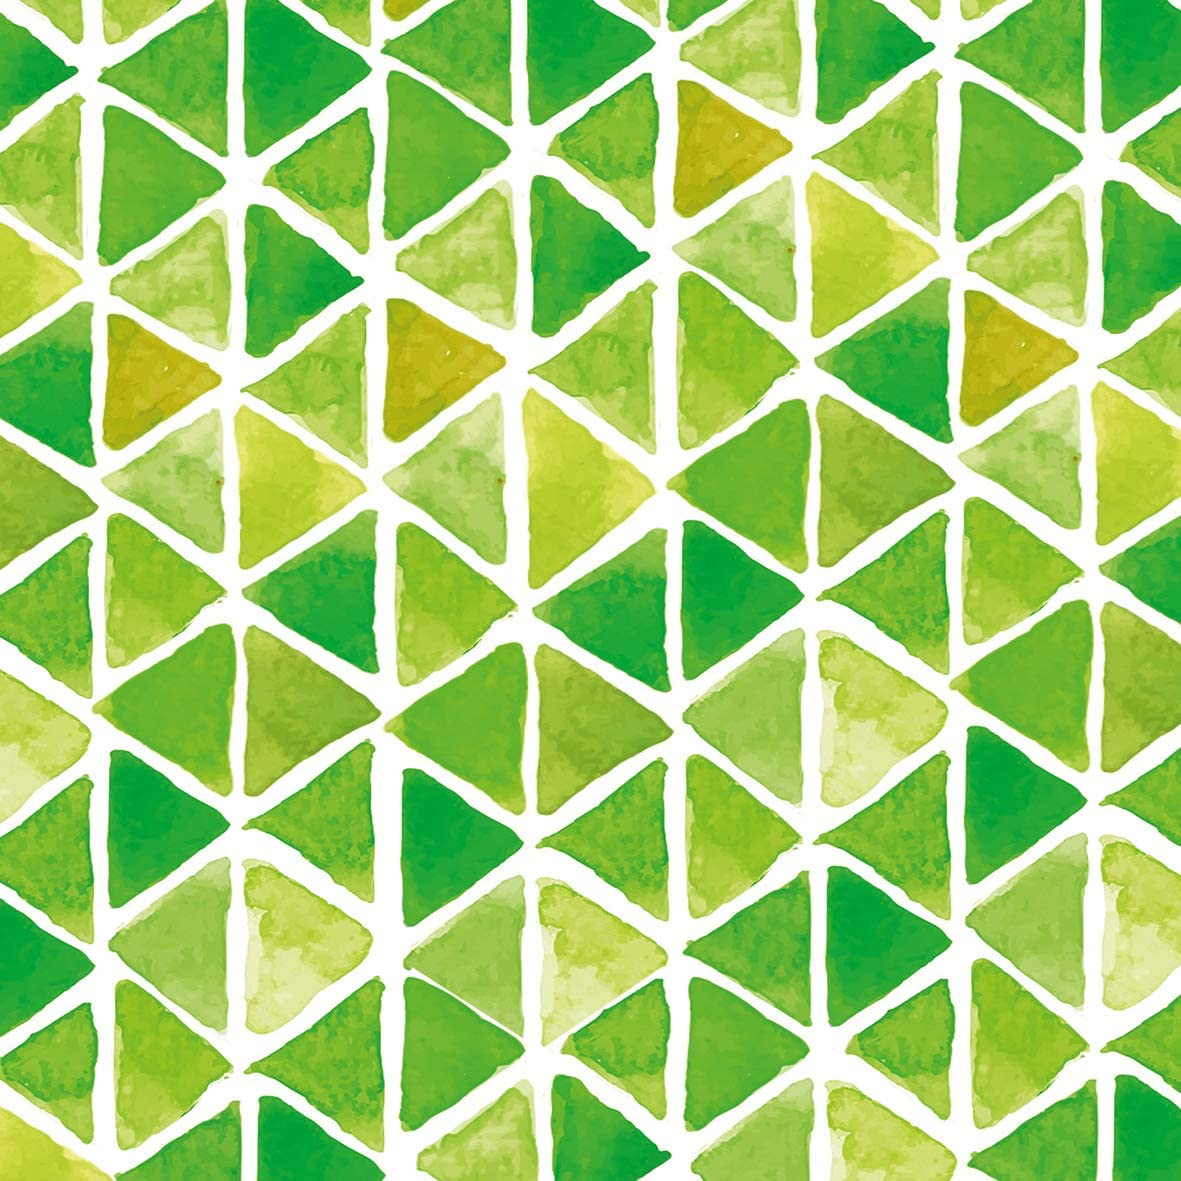 Home Collection Home Kitchen Set 40 Napkins Paper Disposable 3 Veils Pattern Watercolor Green Triangle